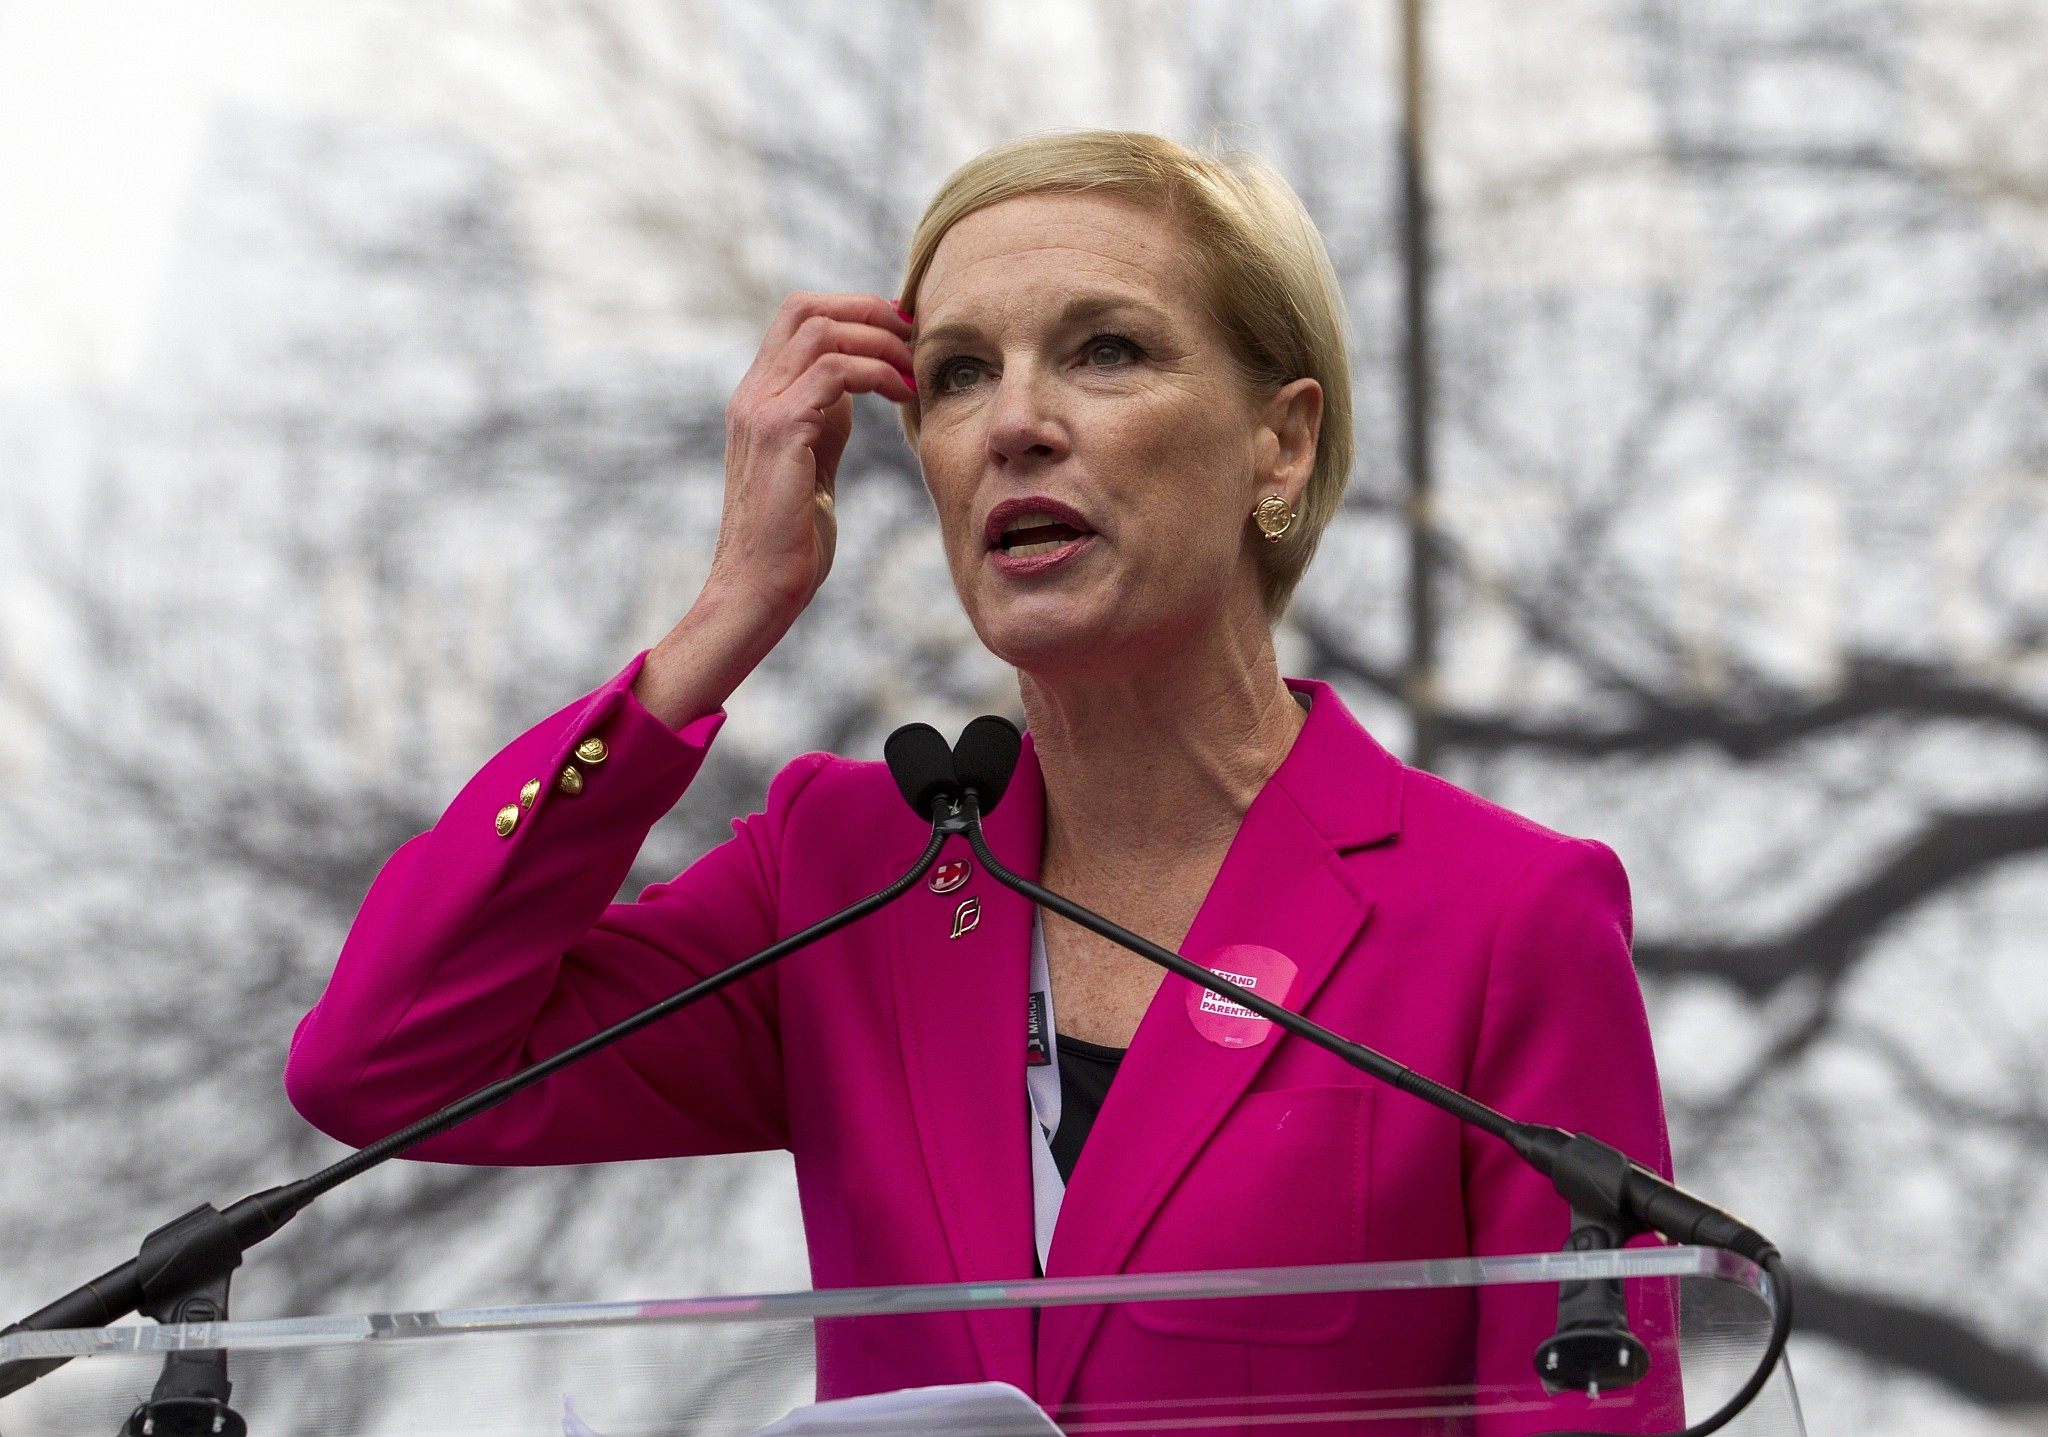 Planned Parenthood CEO: Kushner said funding depended on stopping abortions